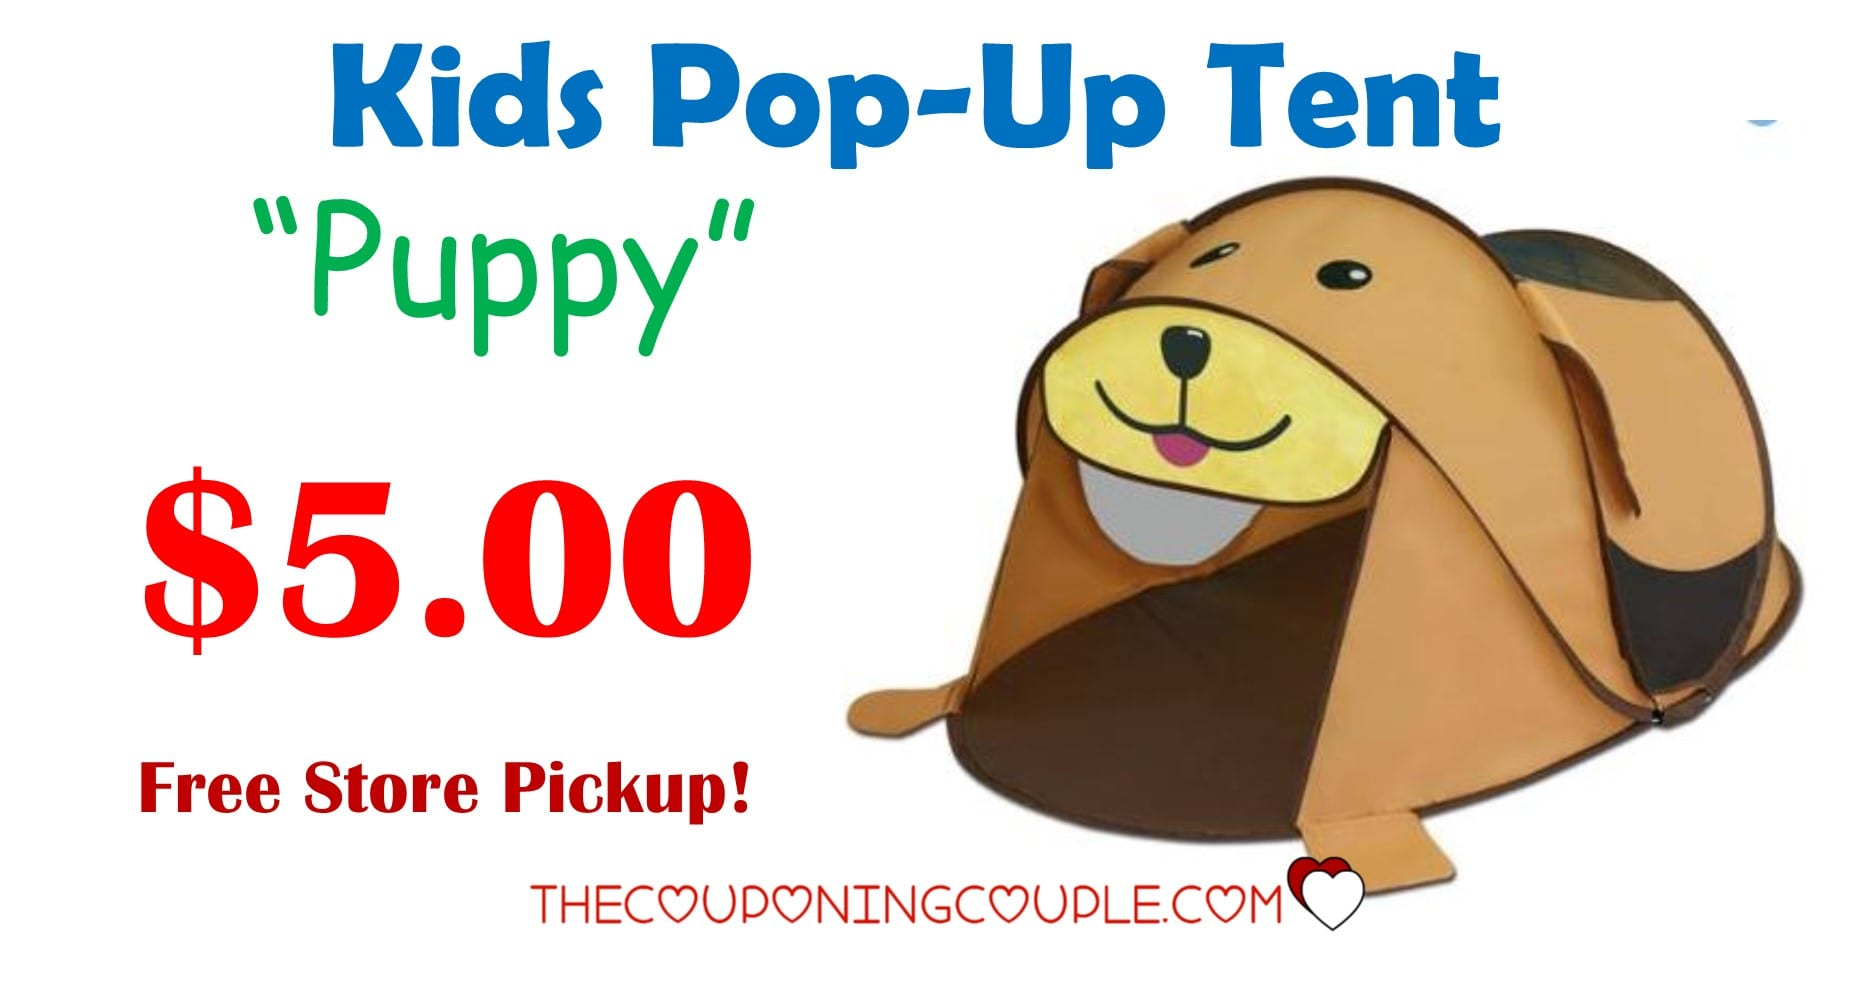 Aldi Tent Kids Pop Up Tent! Only $5.00! Free Store Pickup!